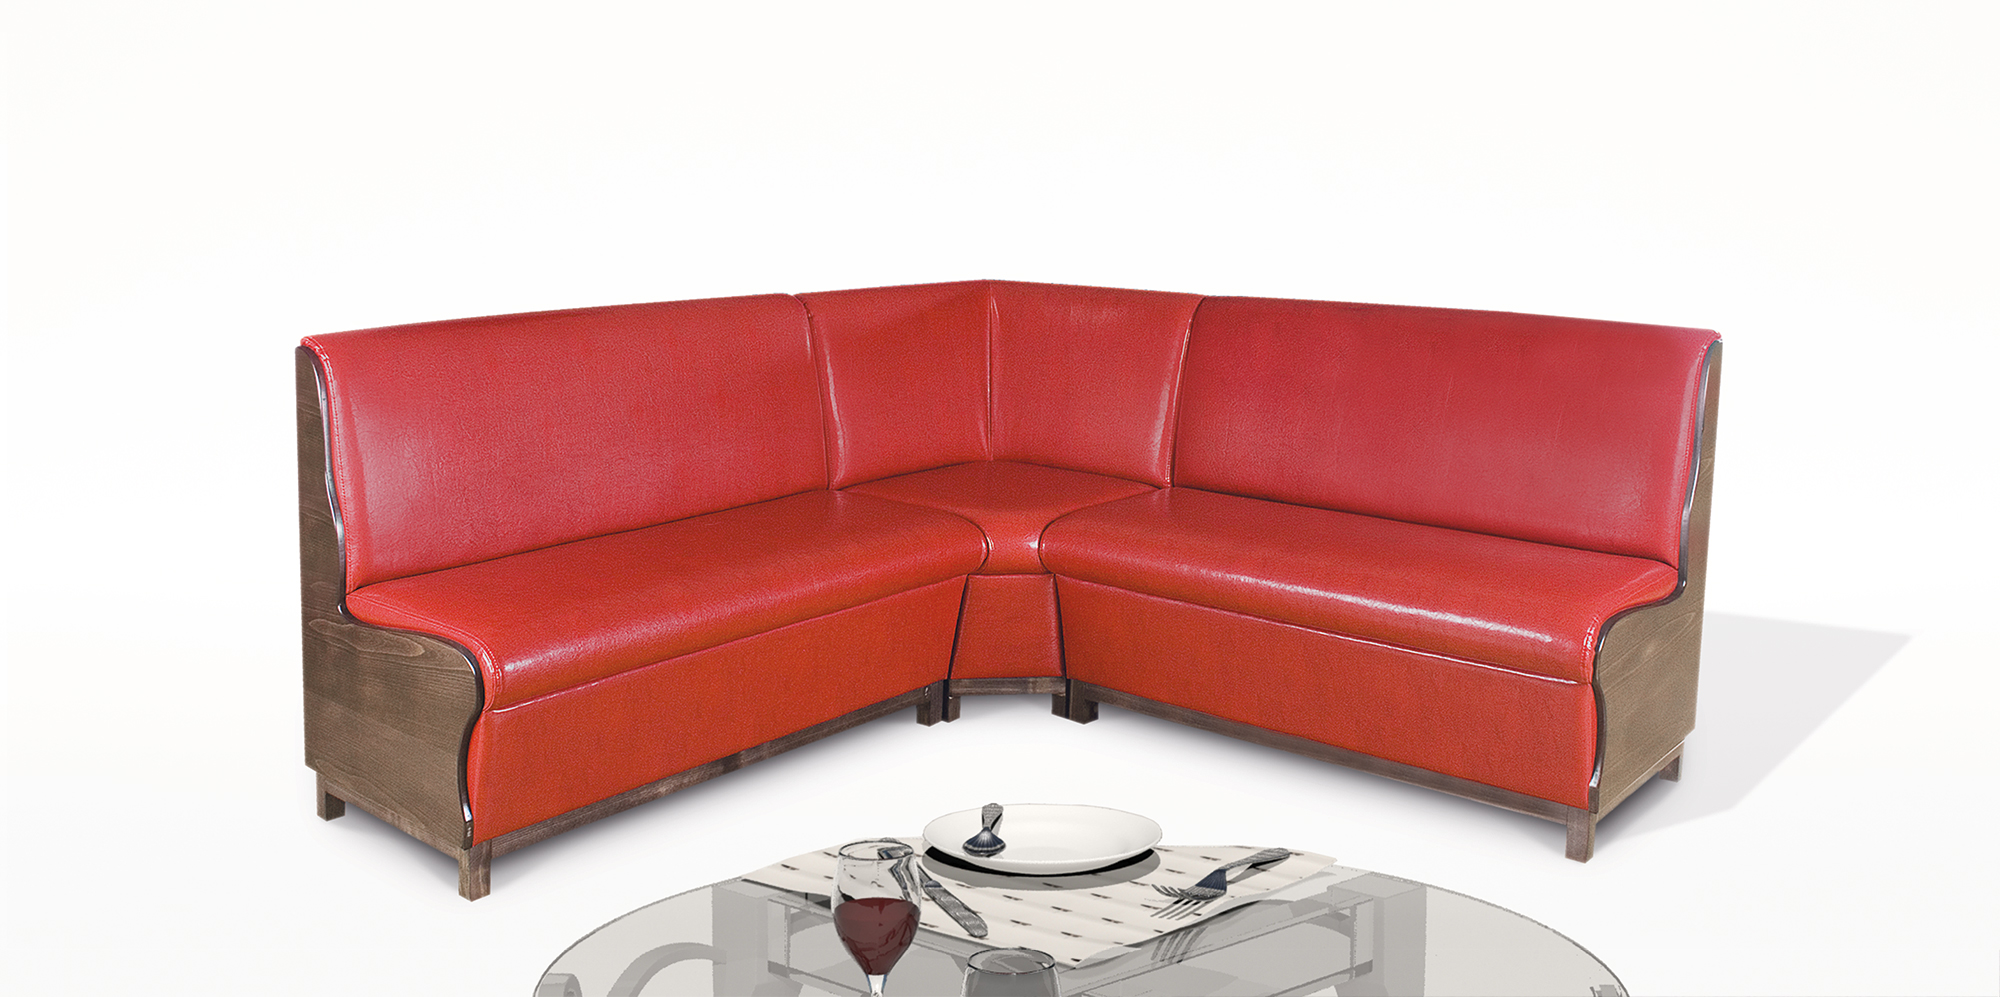 modular sofa system restaurant corner sofas by rudi an. Black Bedroom Furniture Sets. Home Design Ideas